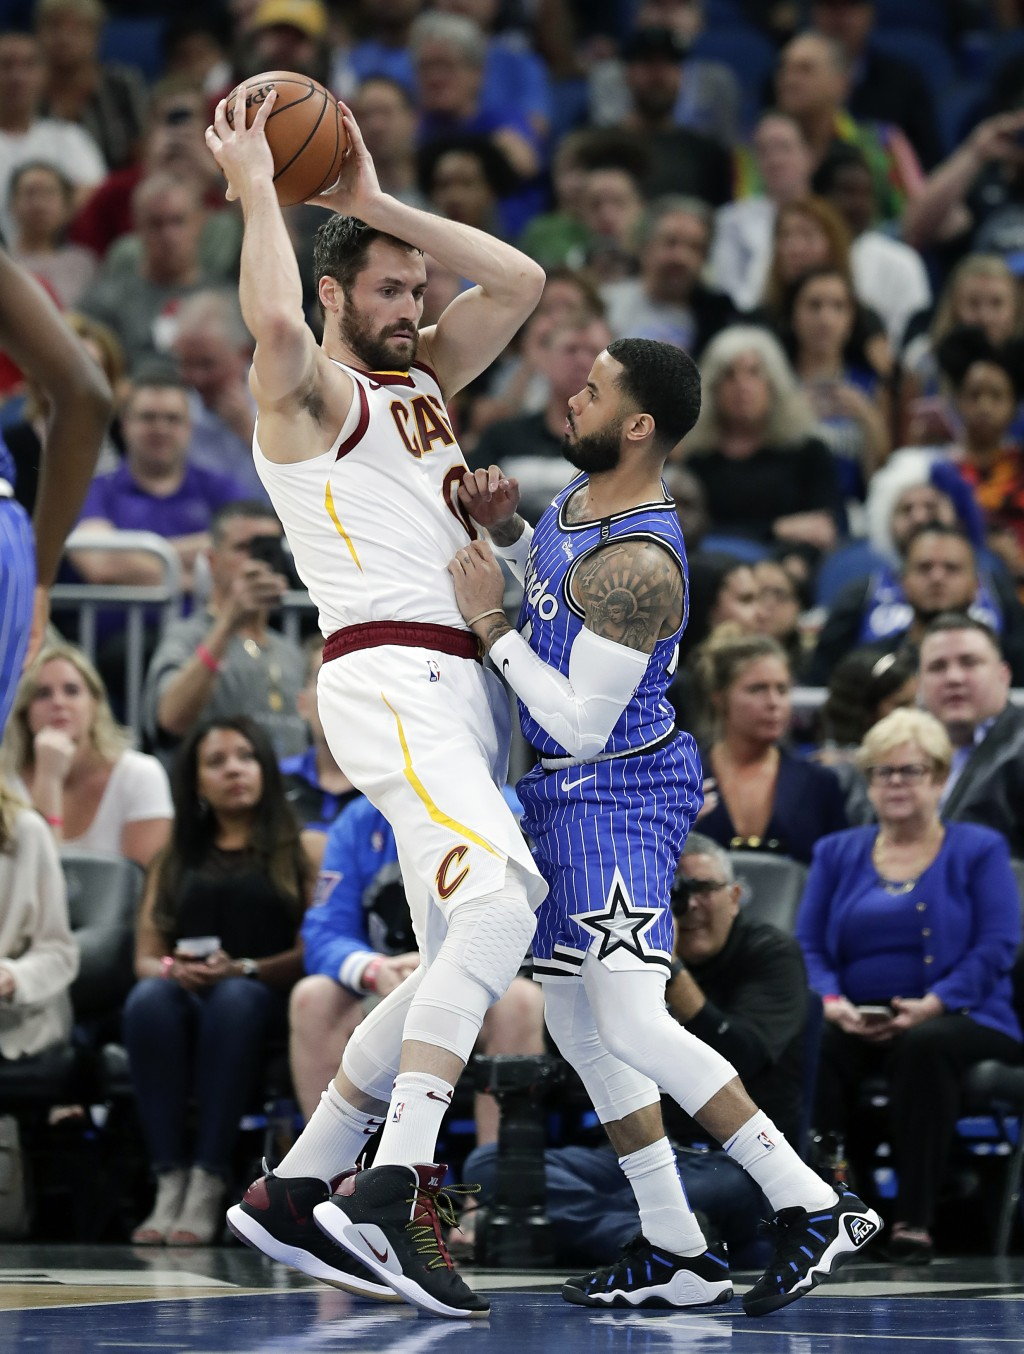 Cleveland Cavaliers' Kevin Love, left, looks to pass the ball as he is guarded by Orlando Magic's D.J. Augustin during the first half of an NBA basket